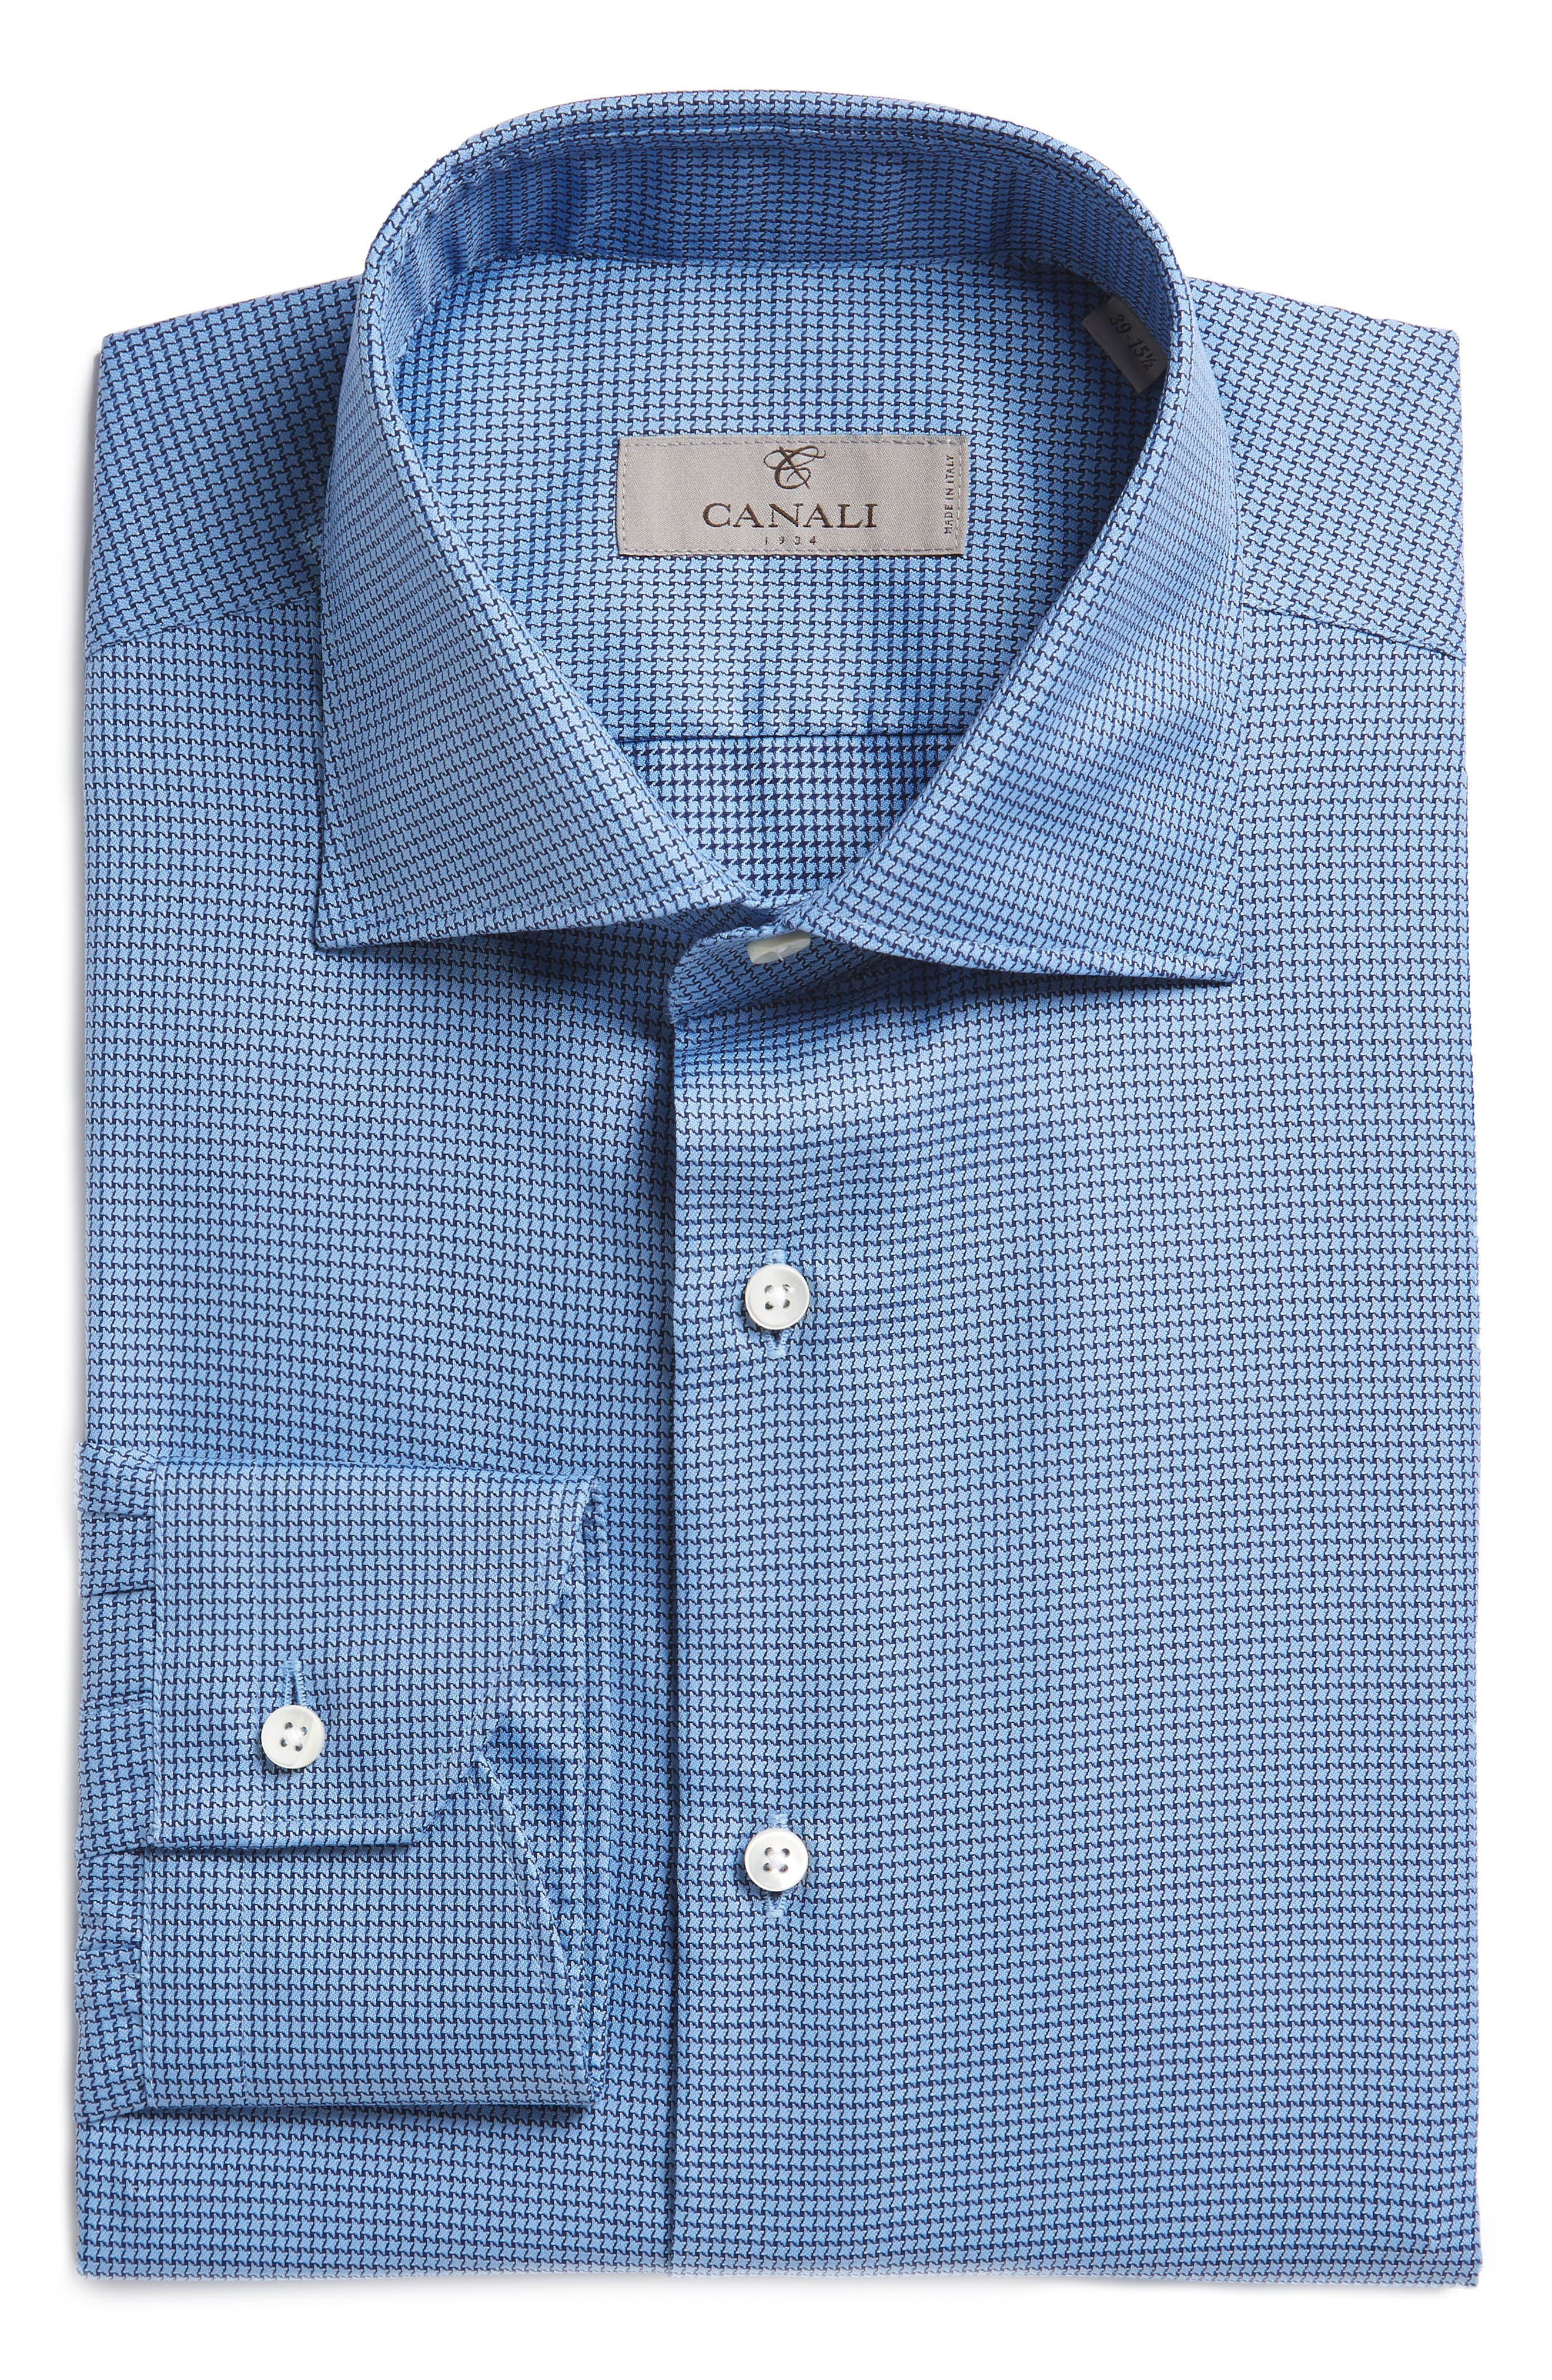 Canali Regular Fit Houndstooth Dress Shirt